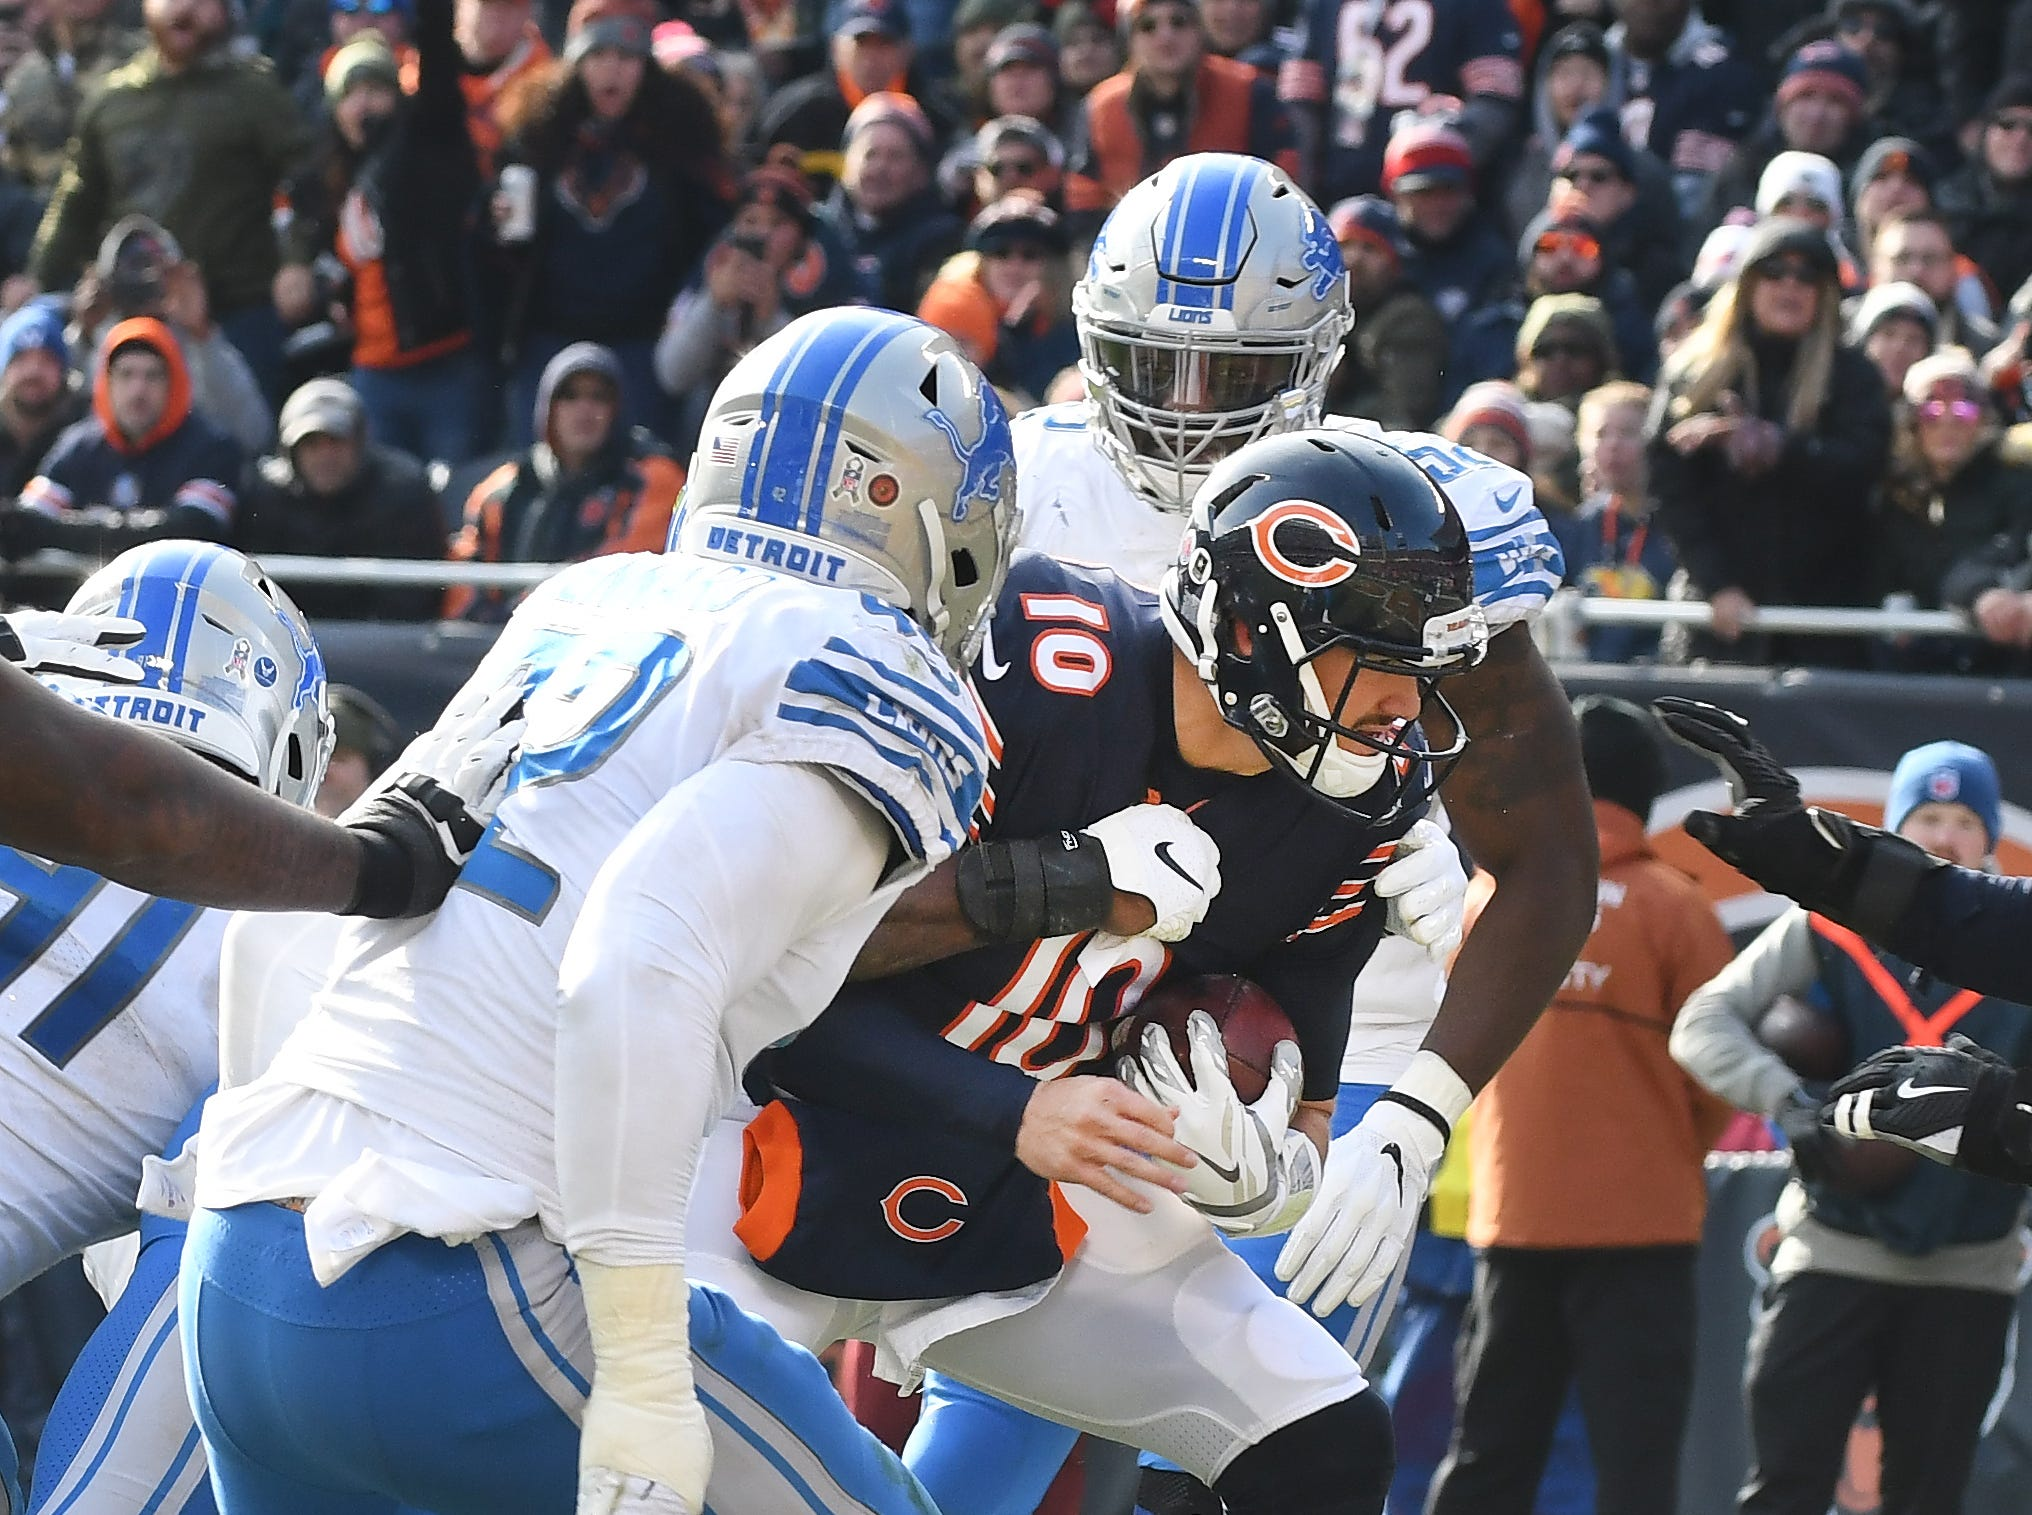 Bears quarterback Mitchell Trubisky storms into the end zone for at touchdown in the second quarter.